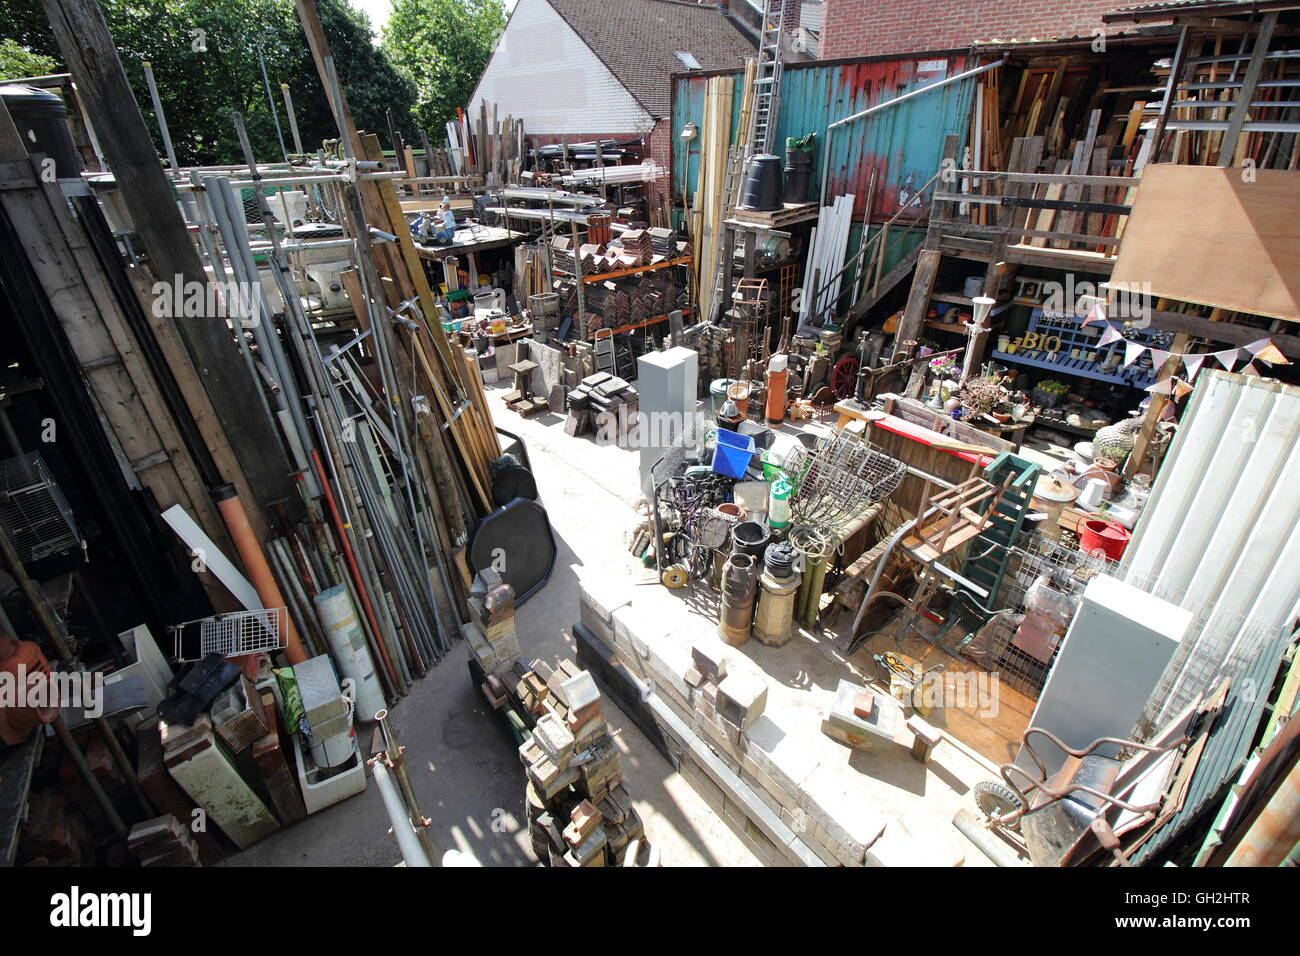 Inside 39 swifties 39 architectural salvage yard in the heart of the stock photo 113769287 alamy for Home architectural salvage yards